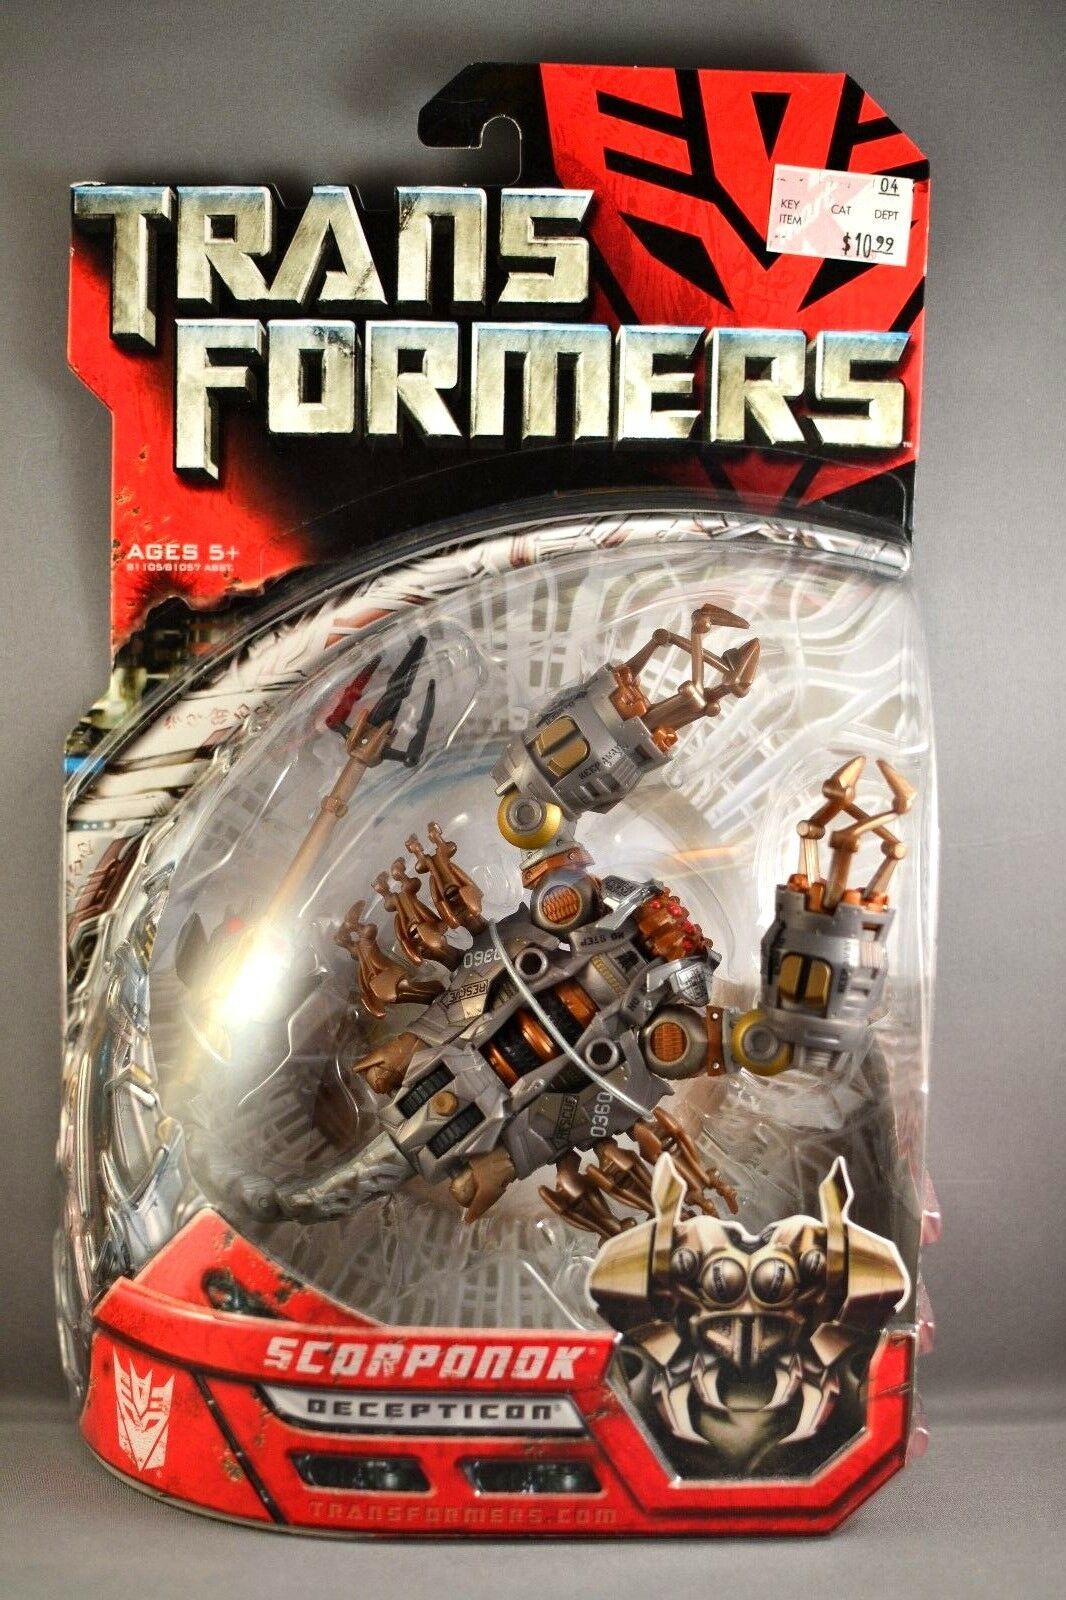 Hasbro Transformers Movie Deluxe Scorponok Action Figure 2007 BRAND NEW SEALED